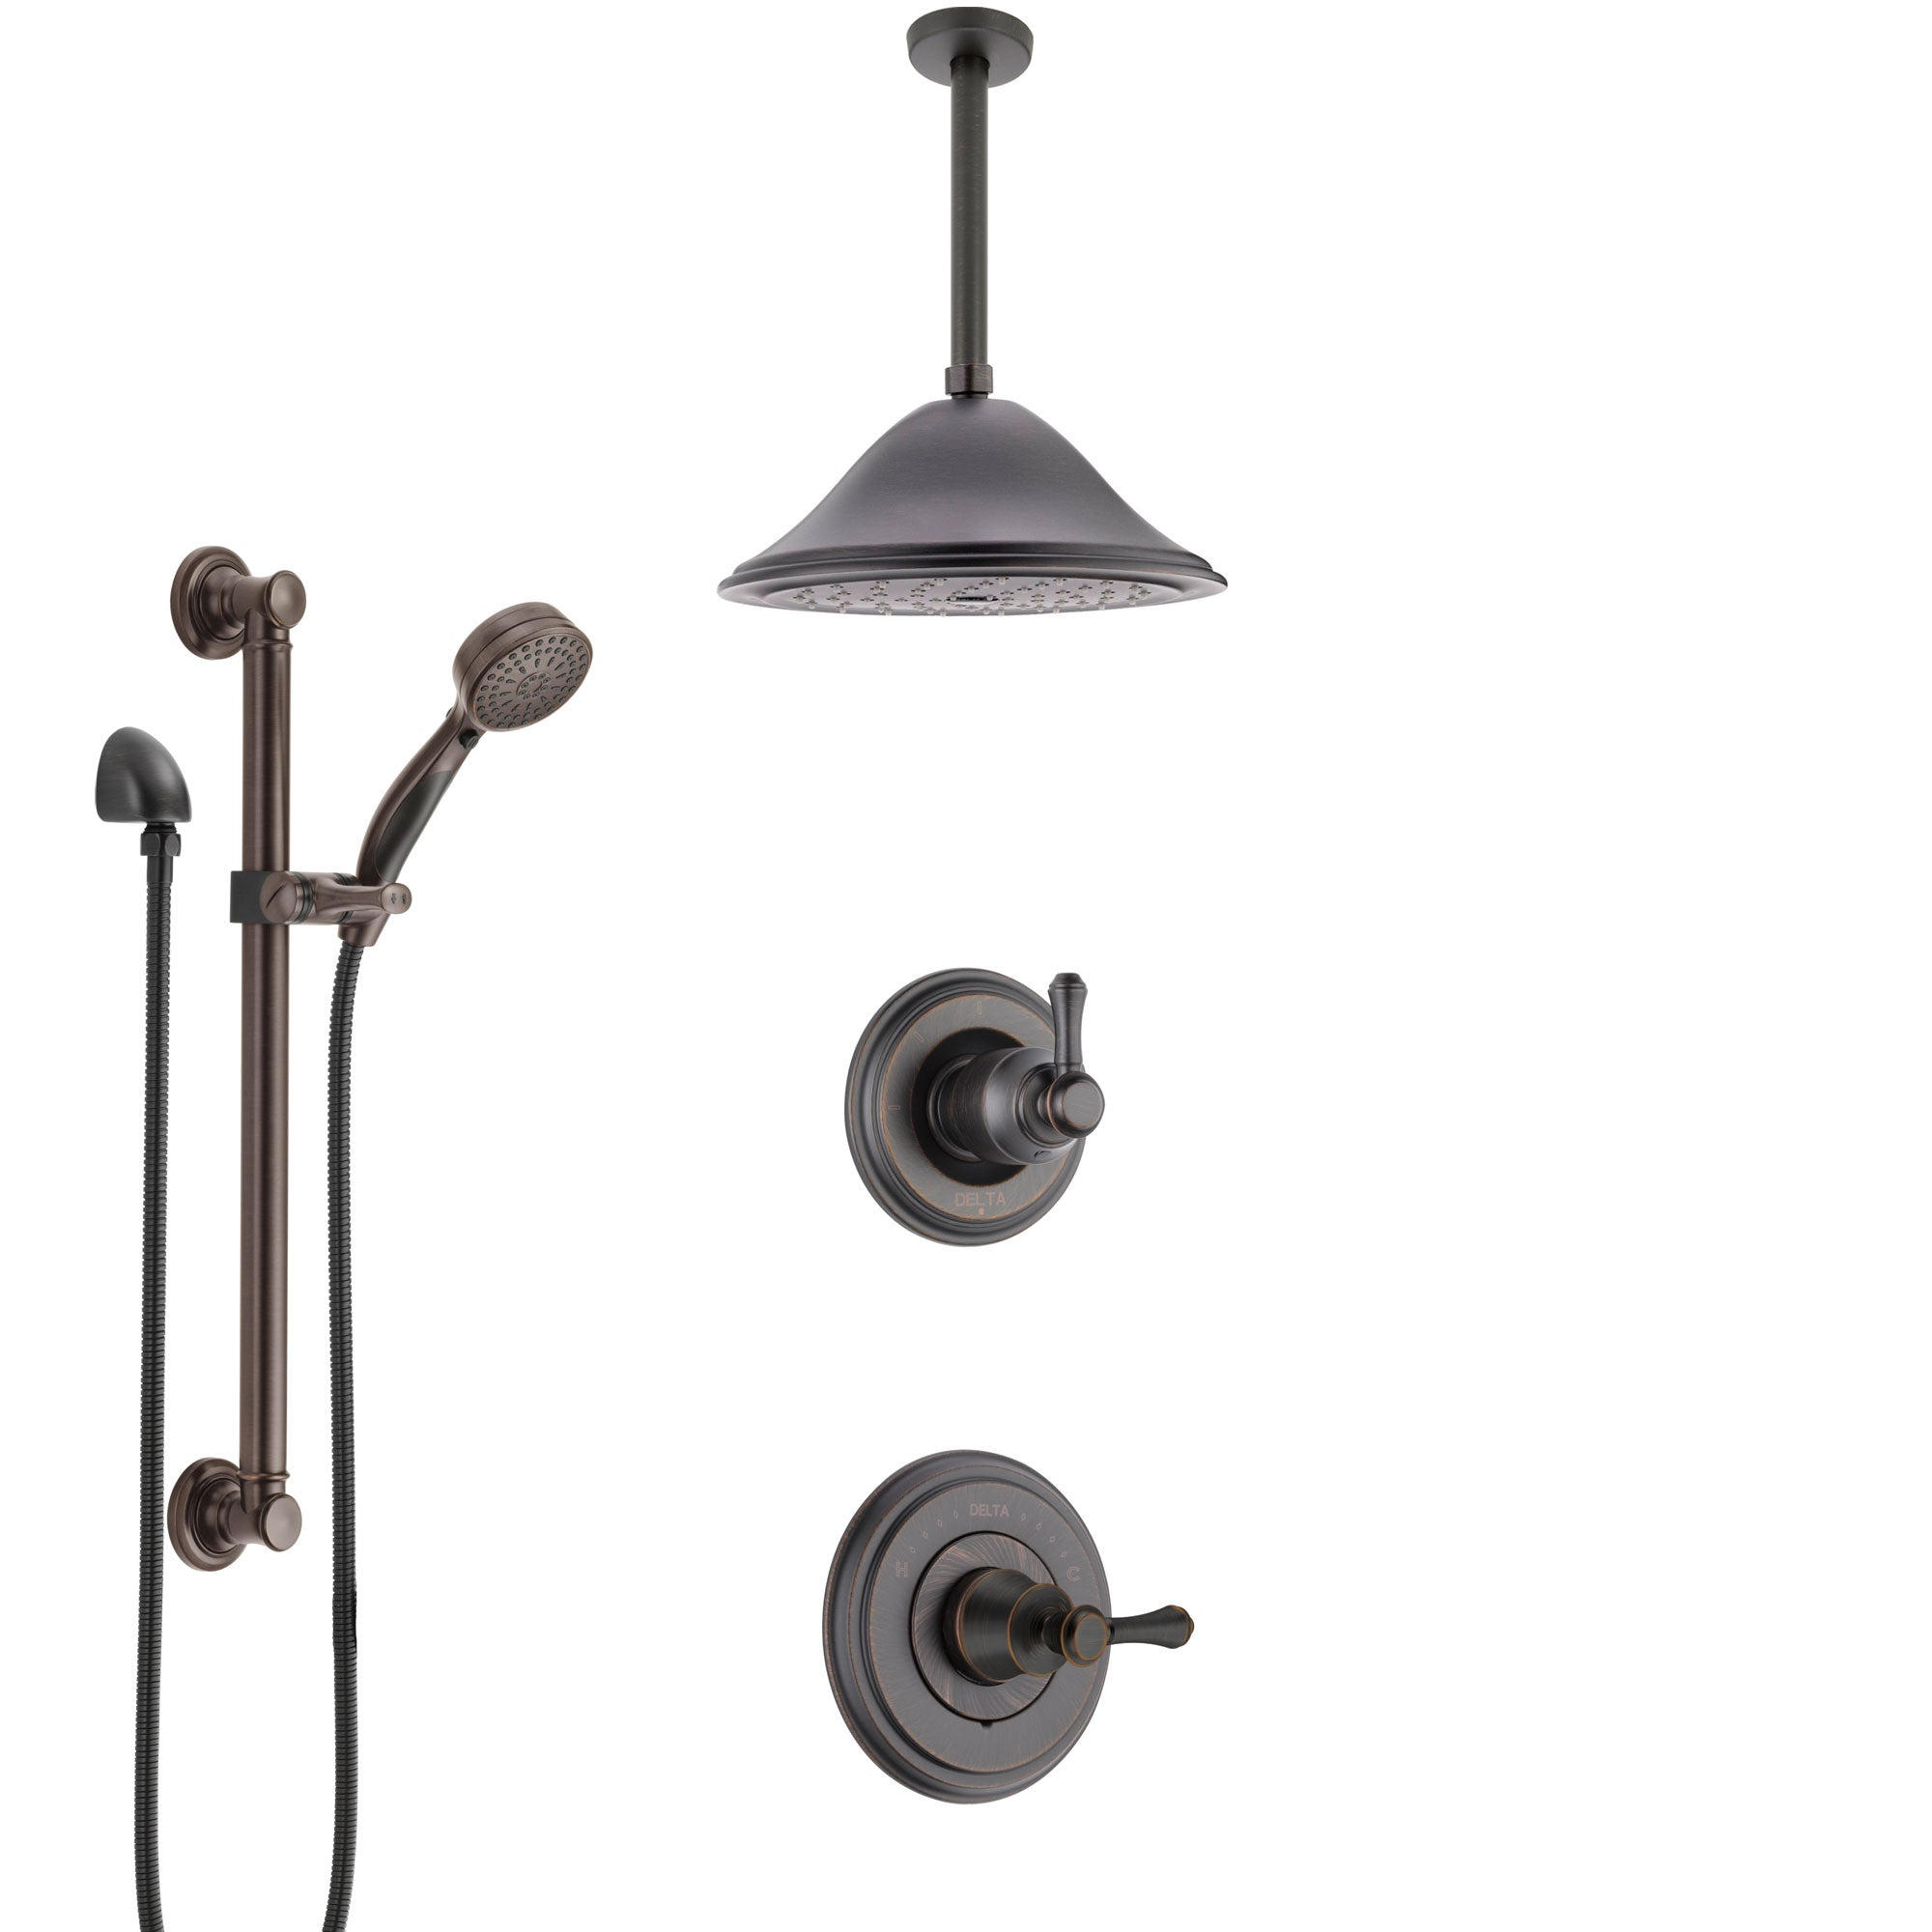 Delta Cassidy Venetian Bronze Shower System with Control Handle, Diverter, Ceiling Mount Showerhead, and Hand Shower with Grab Bar SS14973RB8